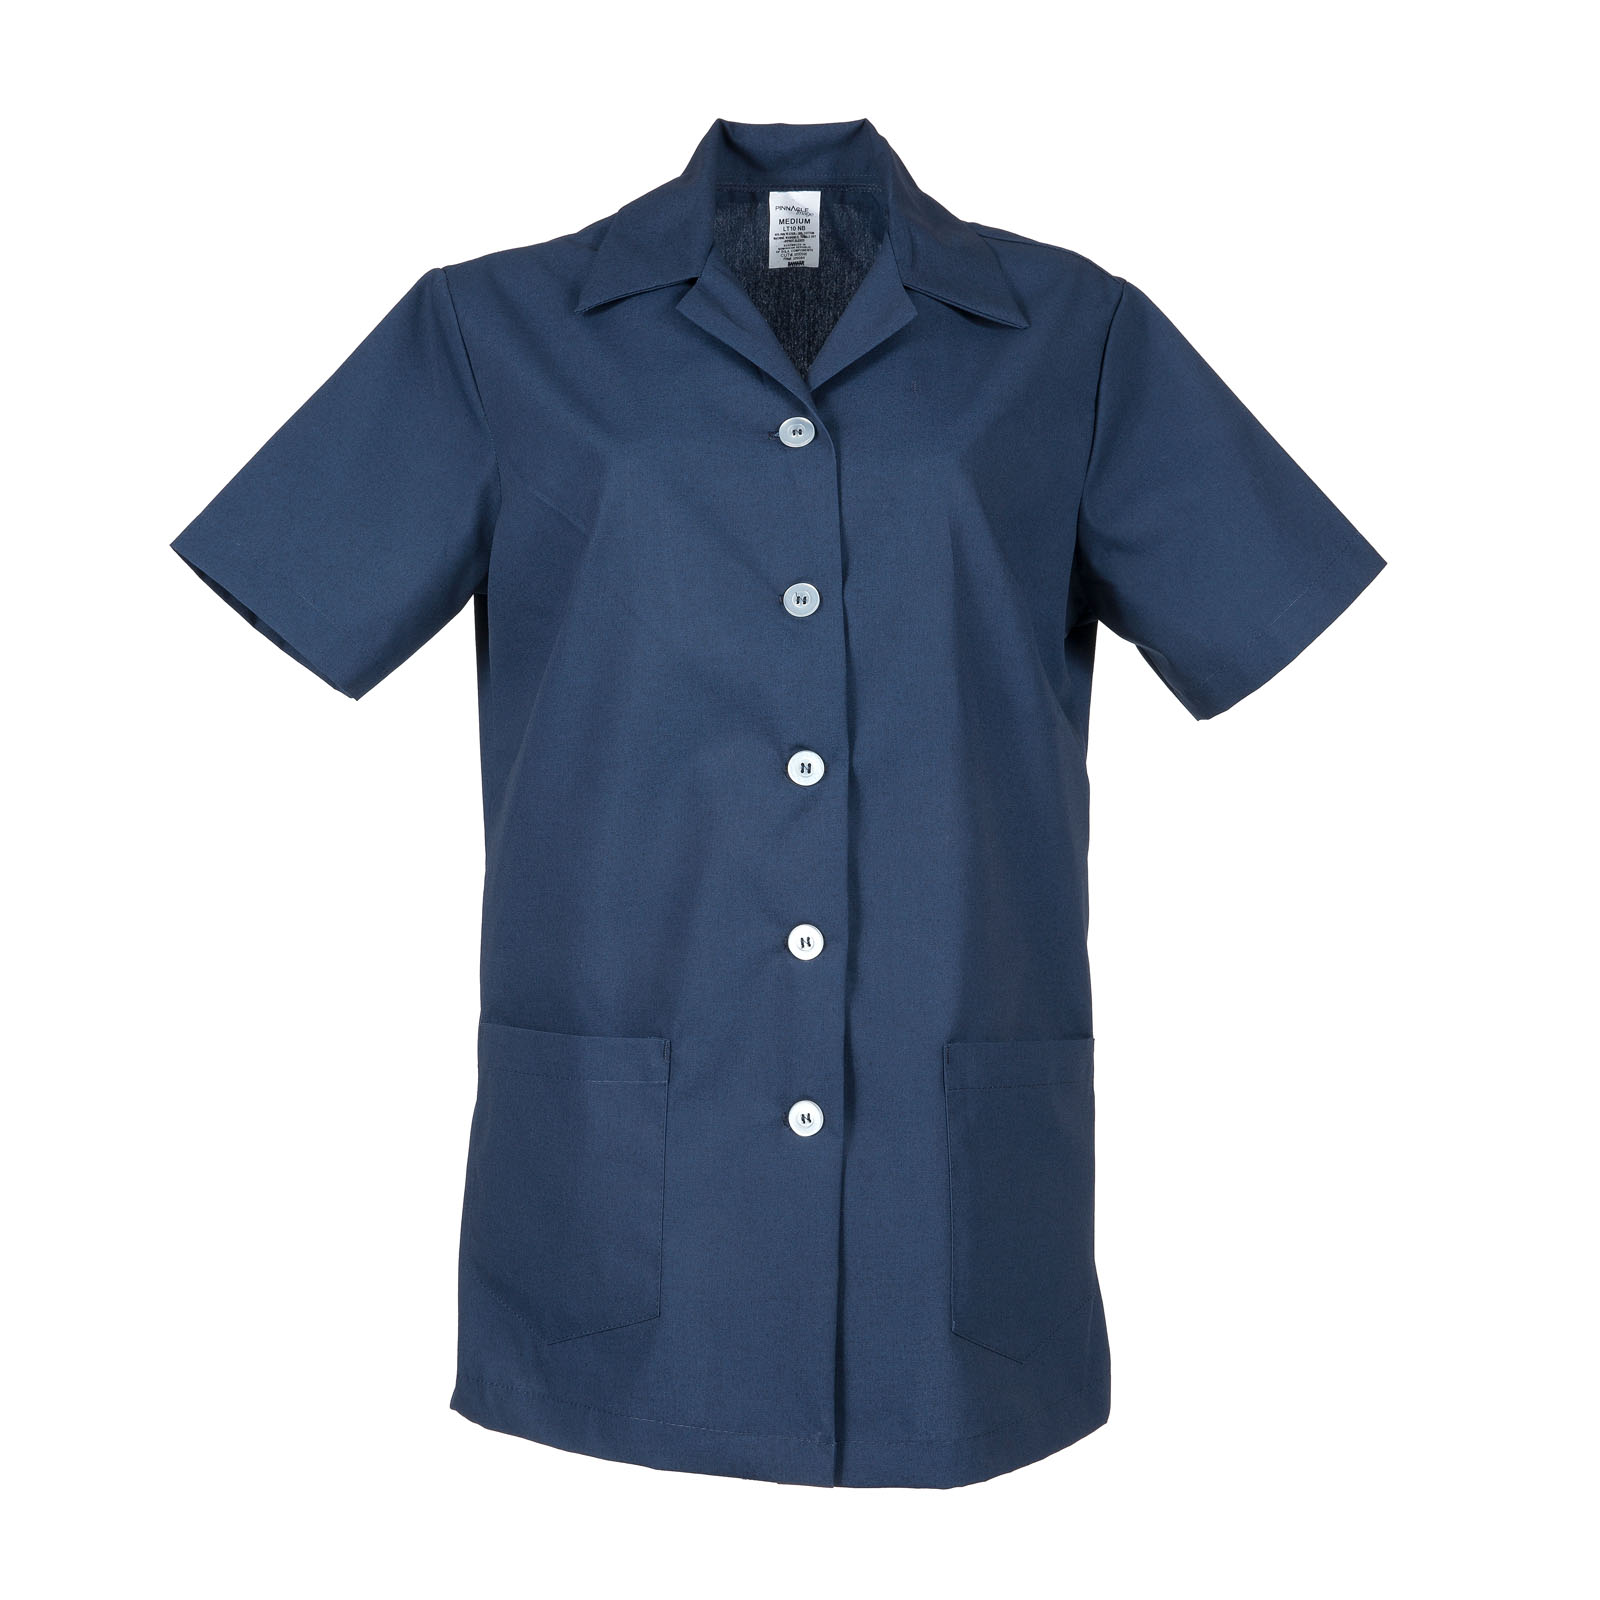 LT10 (Numeric Sizes) -Ladies Tunic, Short Sleeves, 6 Buttons, 65/35